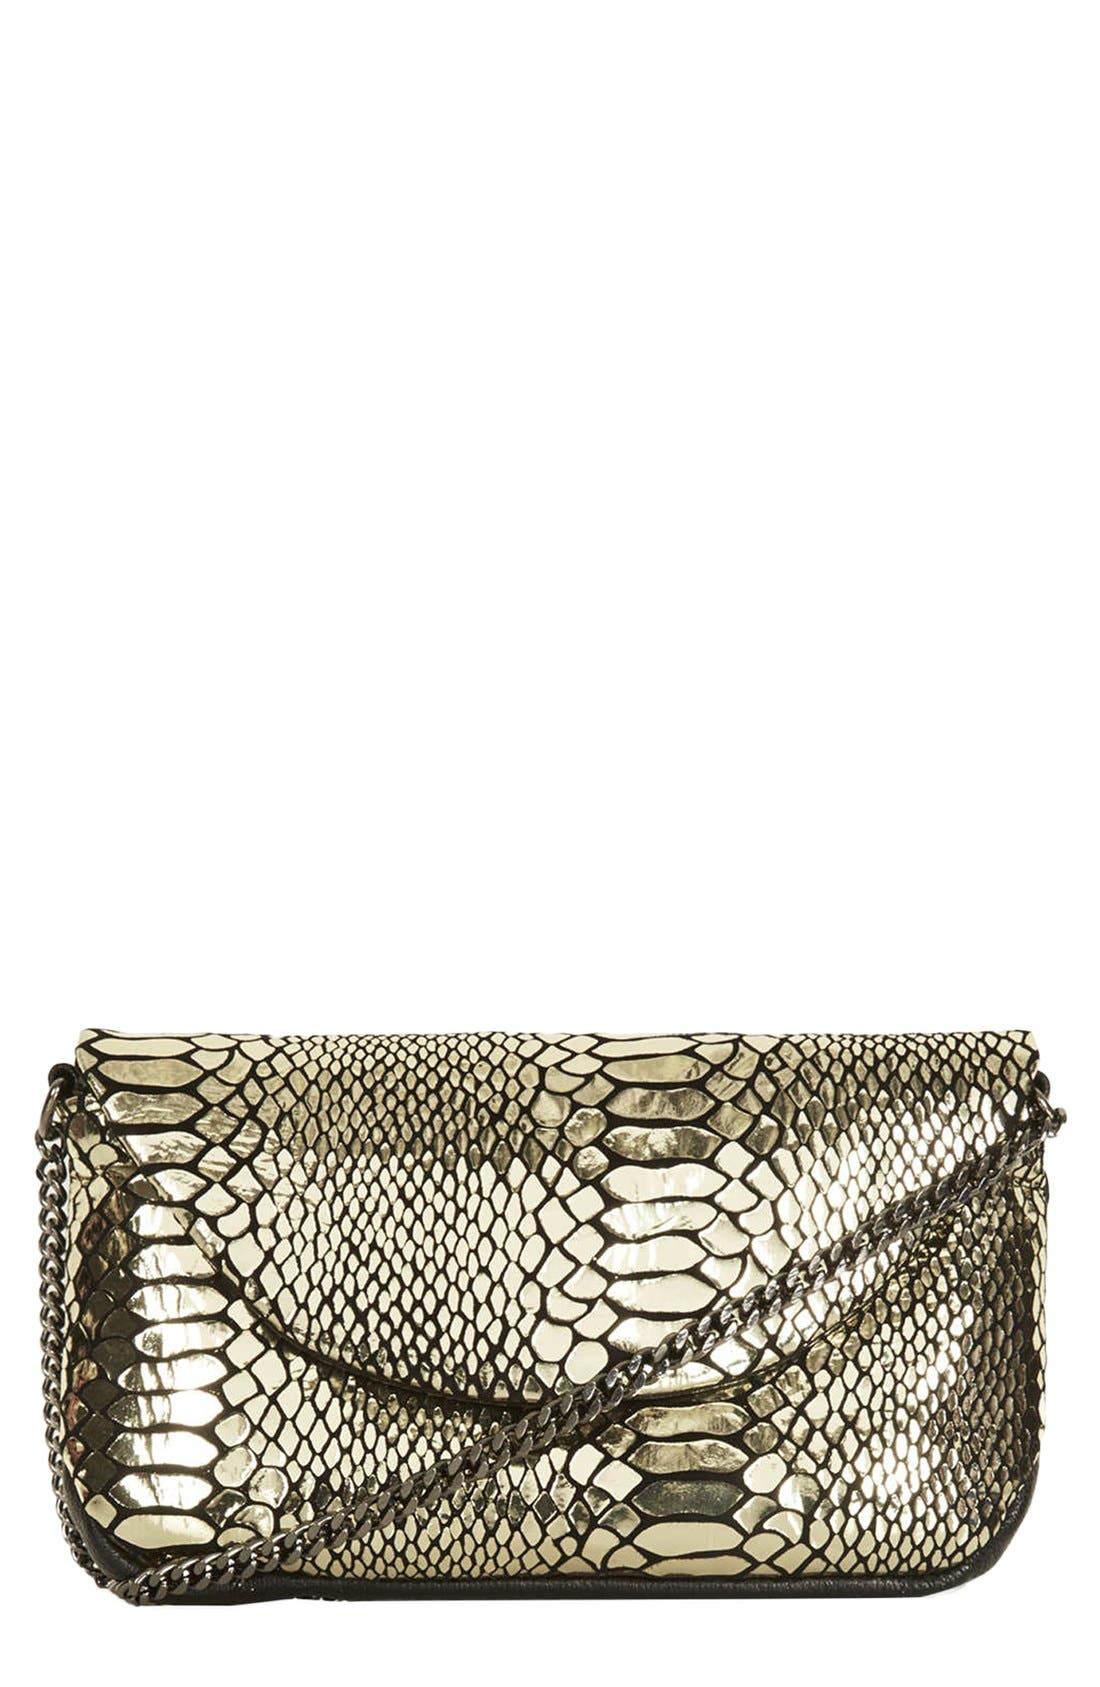 Alternate Image 1 Selected - Topshop Leather Crossbody Bag